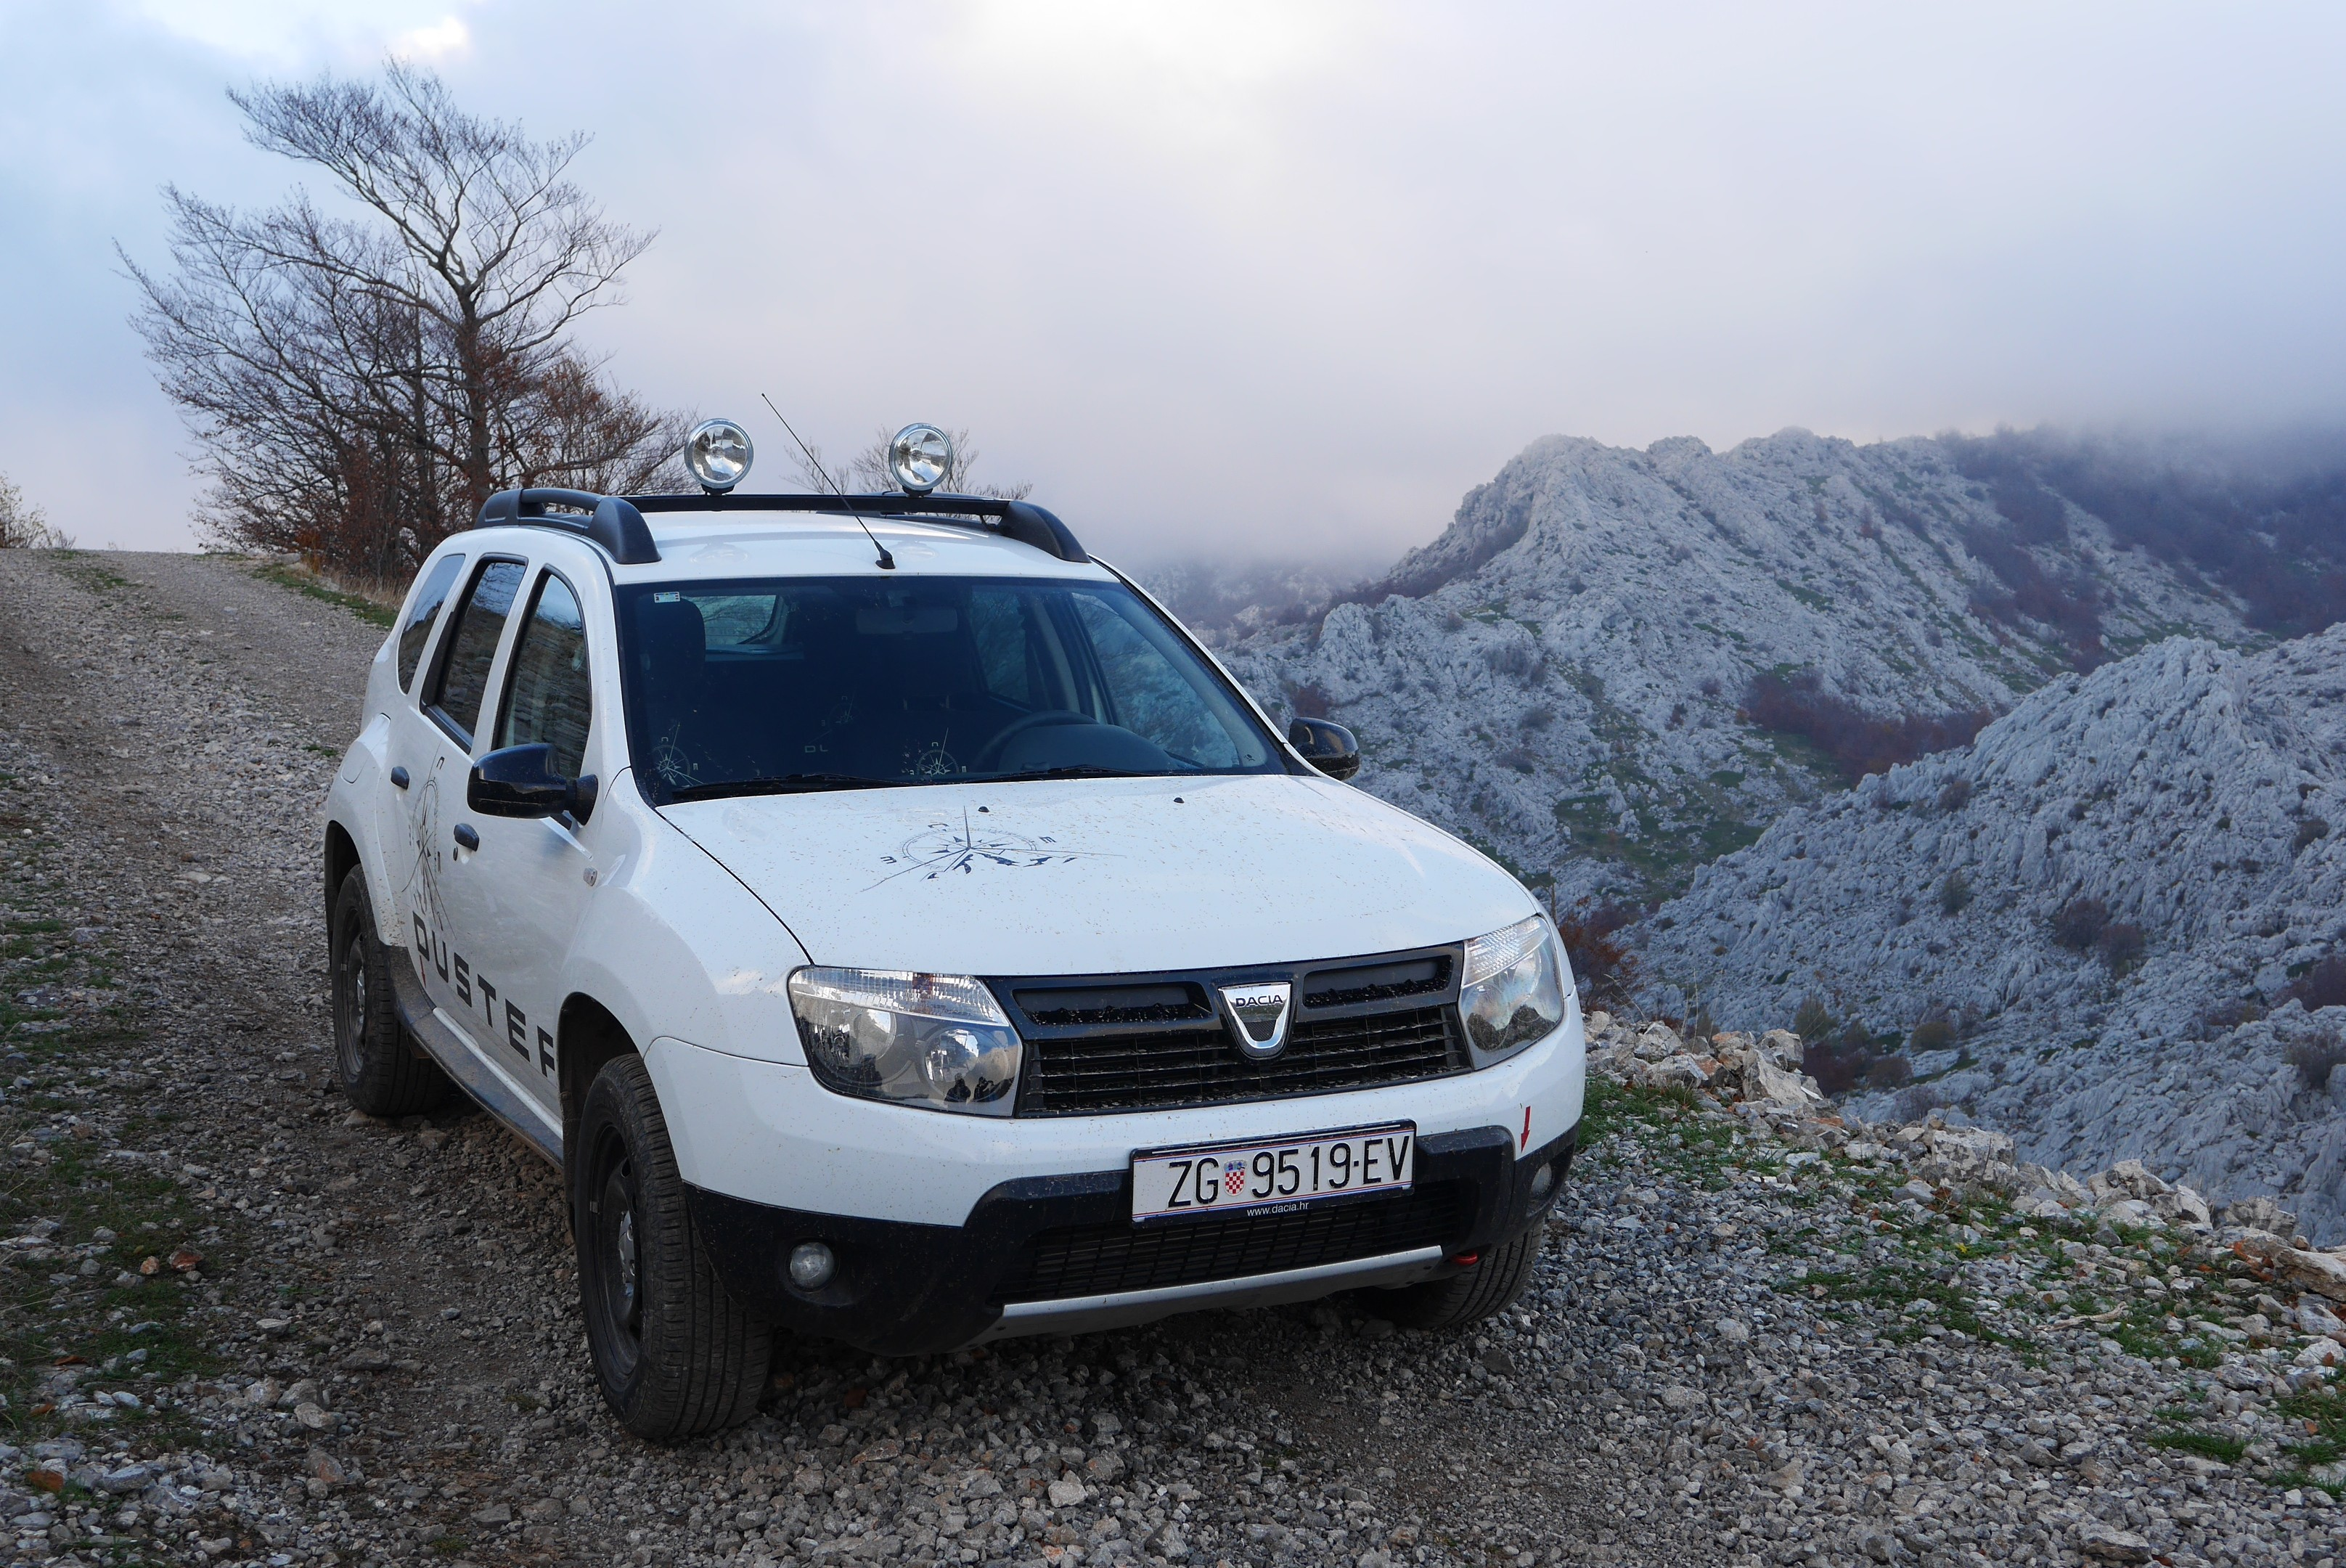 dacia duster 1 5 dci extreme 4x4 test testirali smo testovi vidiauto vidiauto. Black Bedroom Furniture Sets. Home Design Ideas